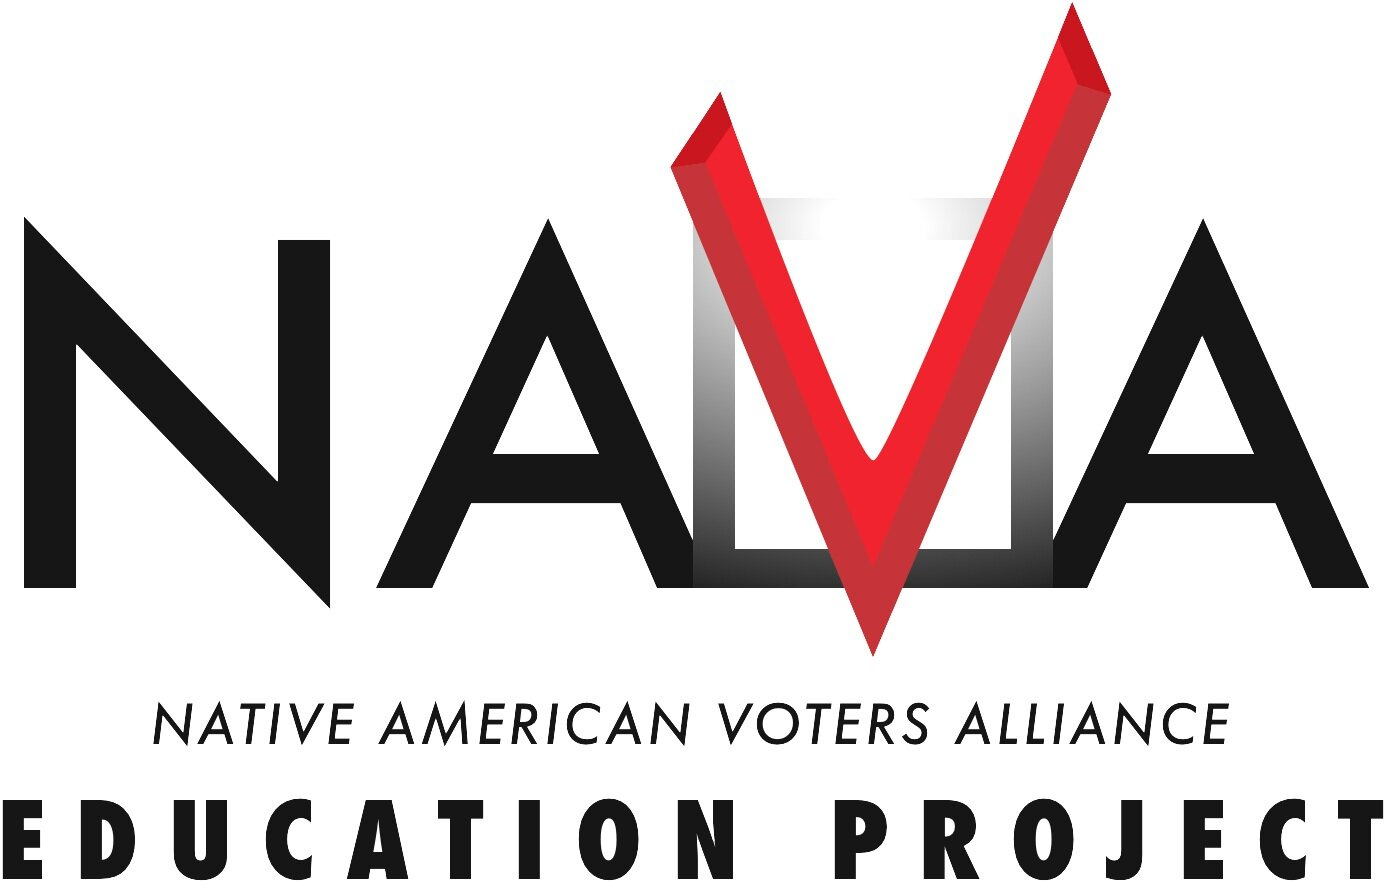 NAVA EDUCATION PROJECT